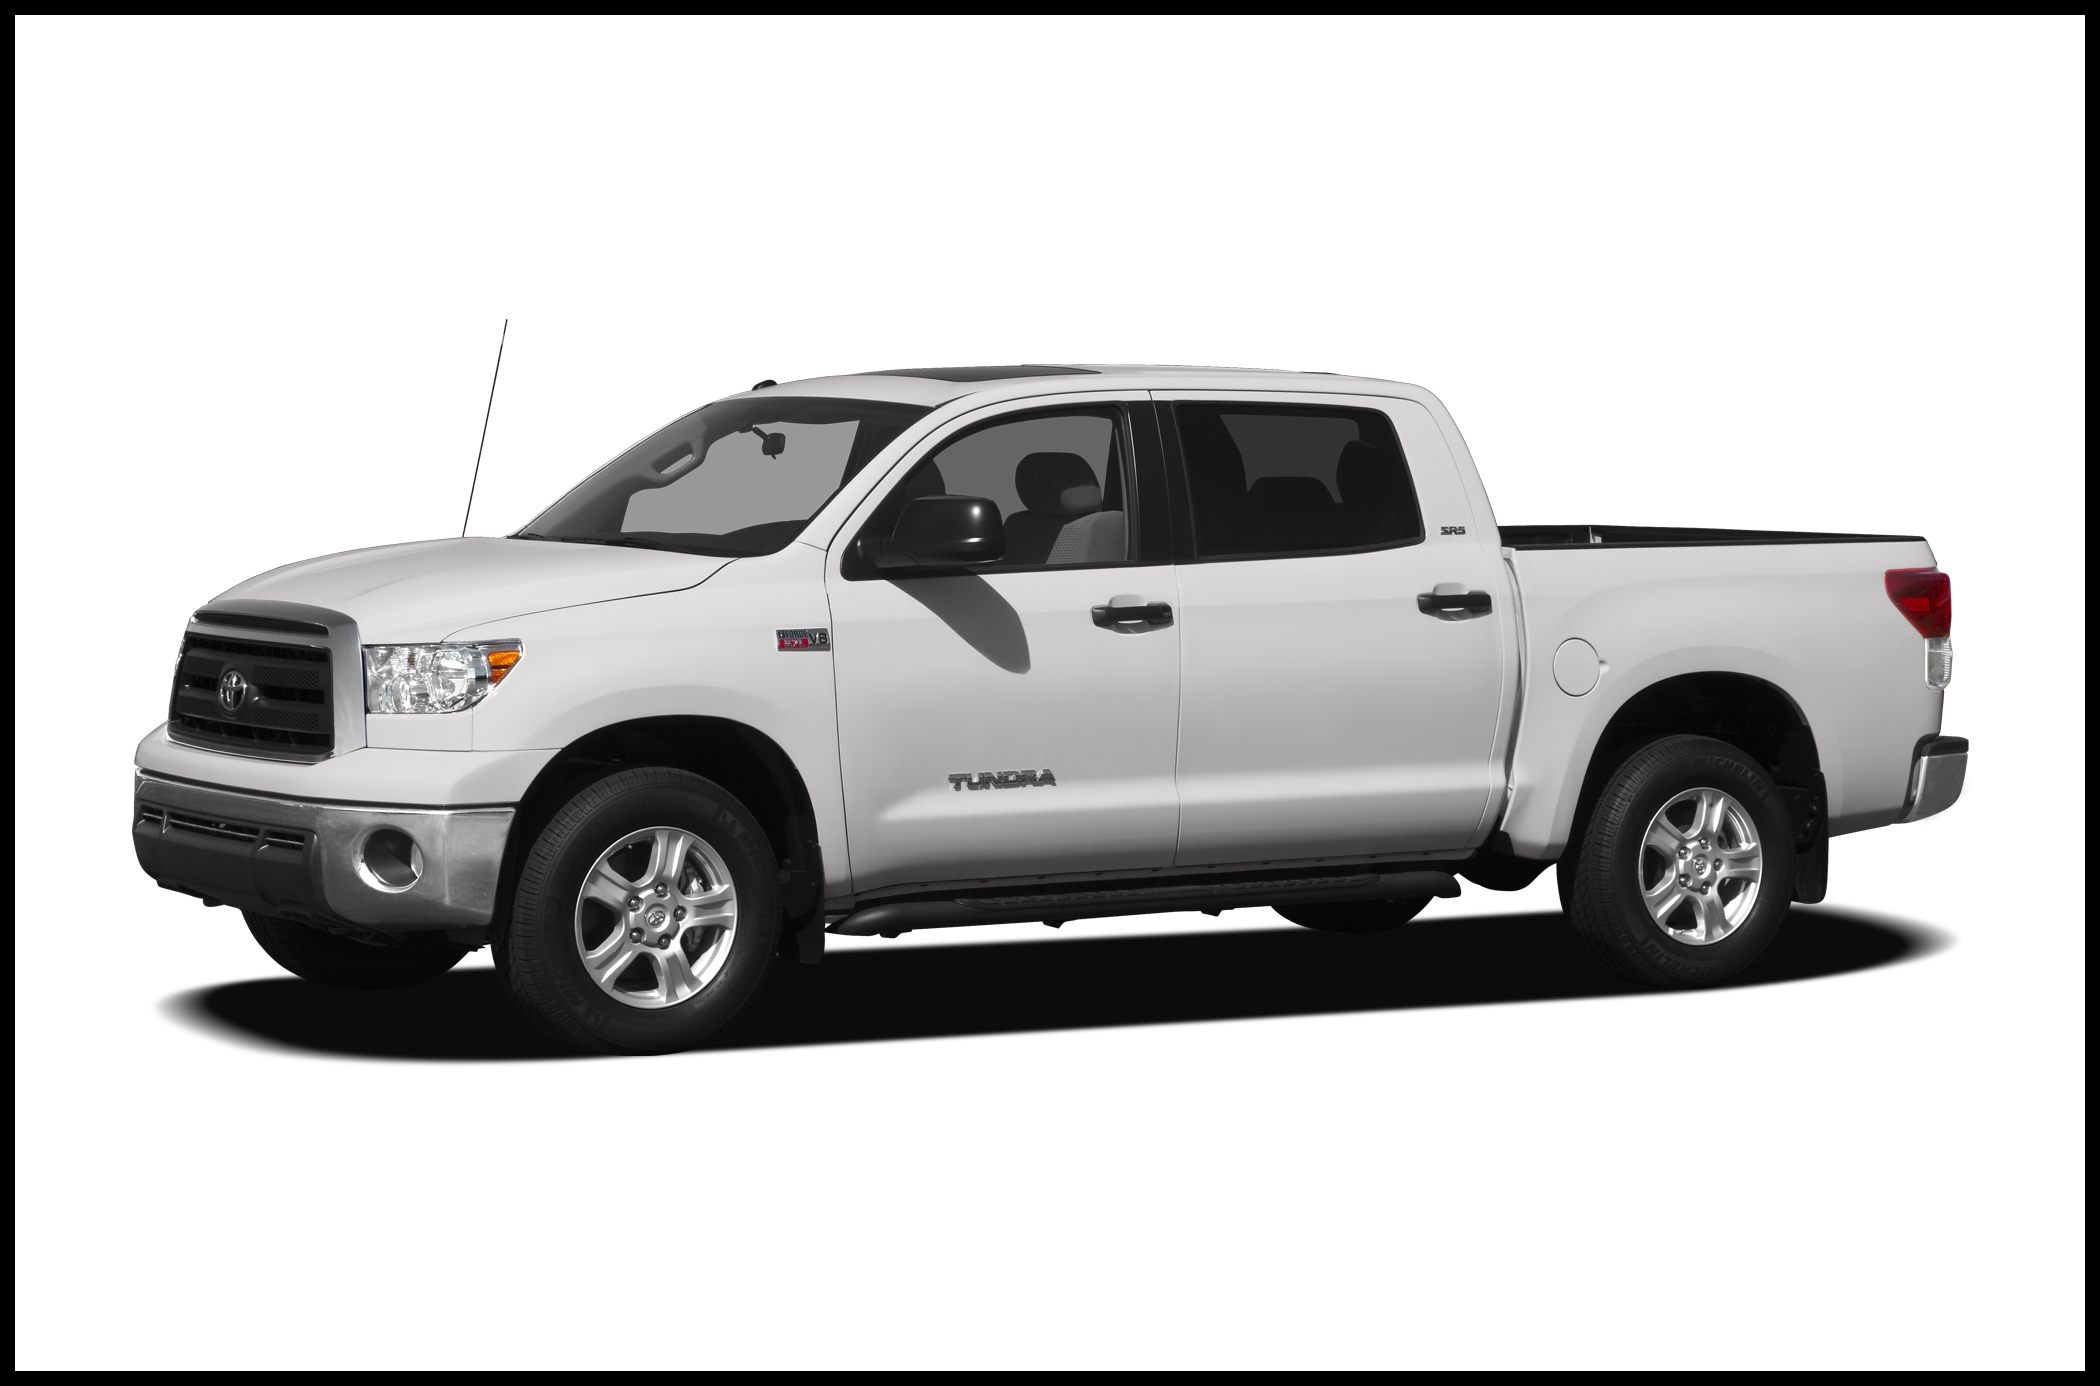 2012 Toyota Tundra Grade 5 7L V8 4x4 Crew Max 5 6 ft box 145 7 in WB Specs and Prices